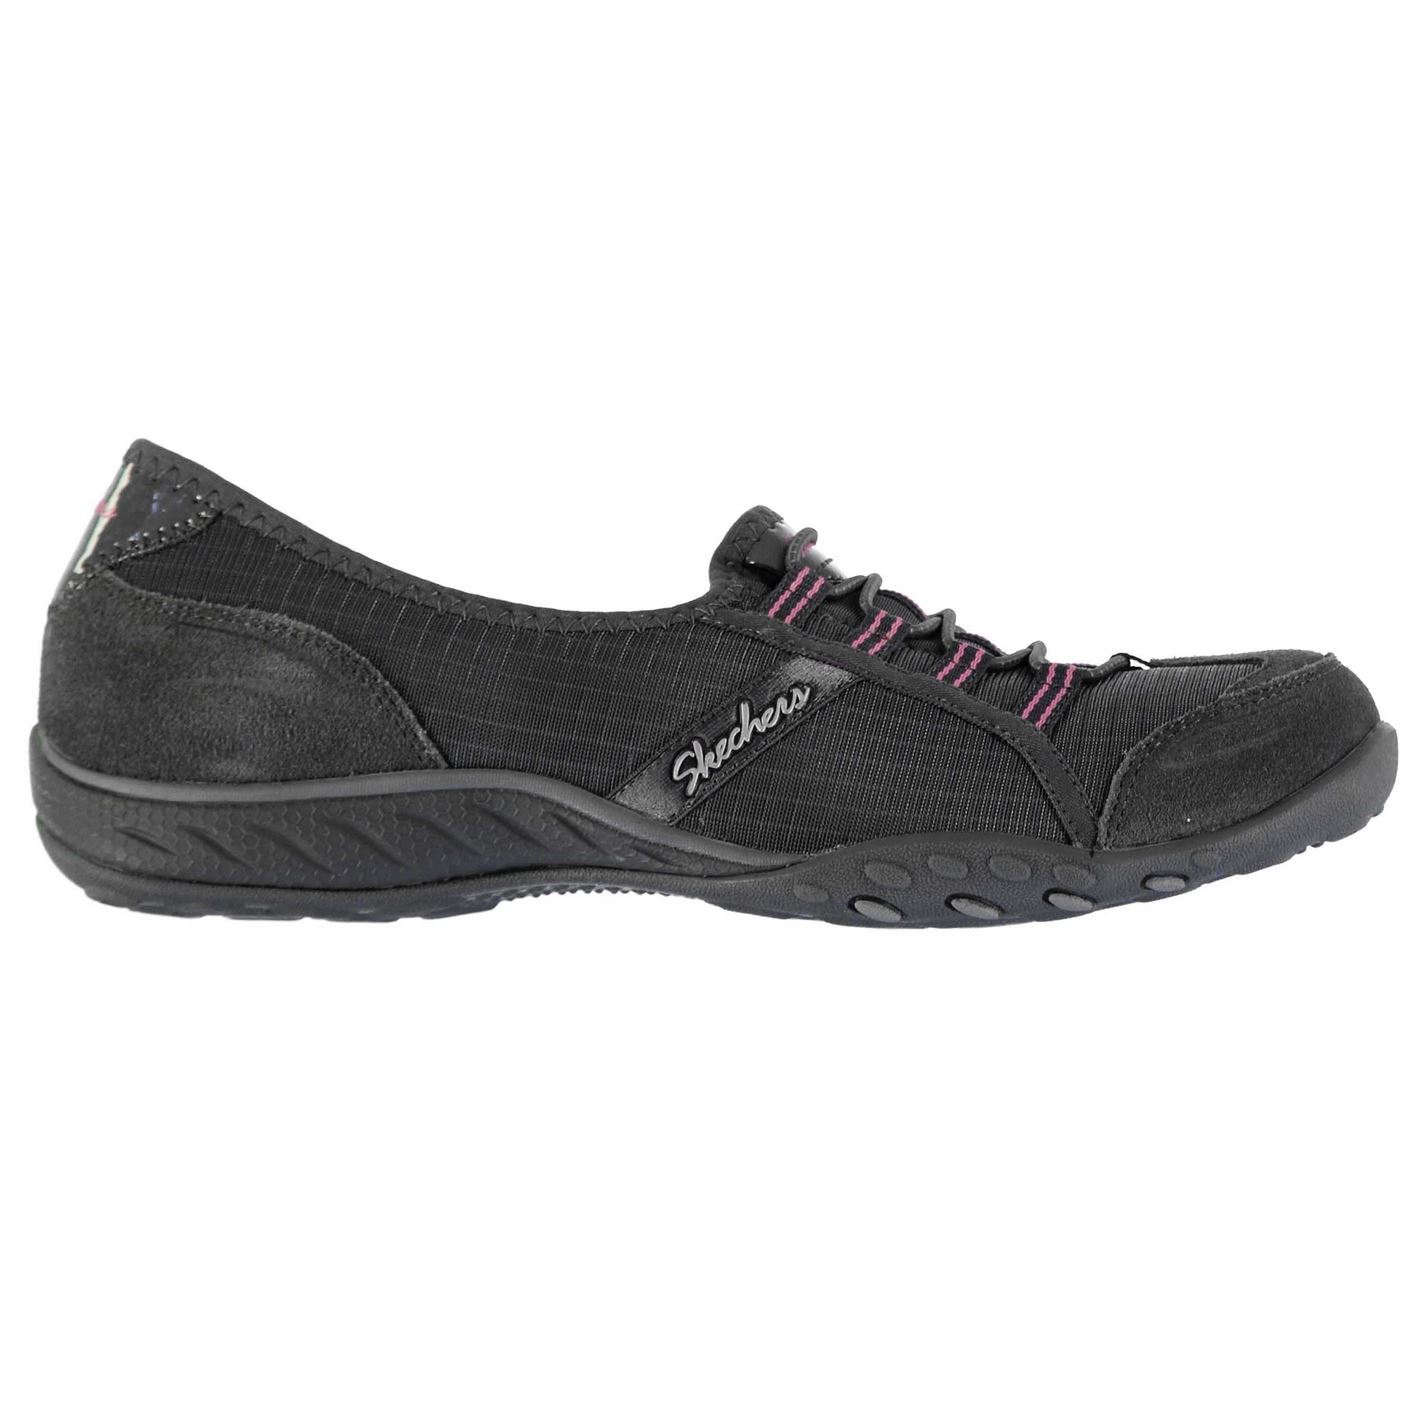 rosa Sneakers Allure Be Carboncino Trainers Grigio Calzature rosa Donna Pump Skechers 4wUTZqw